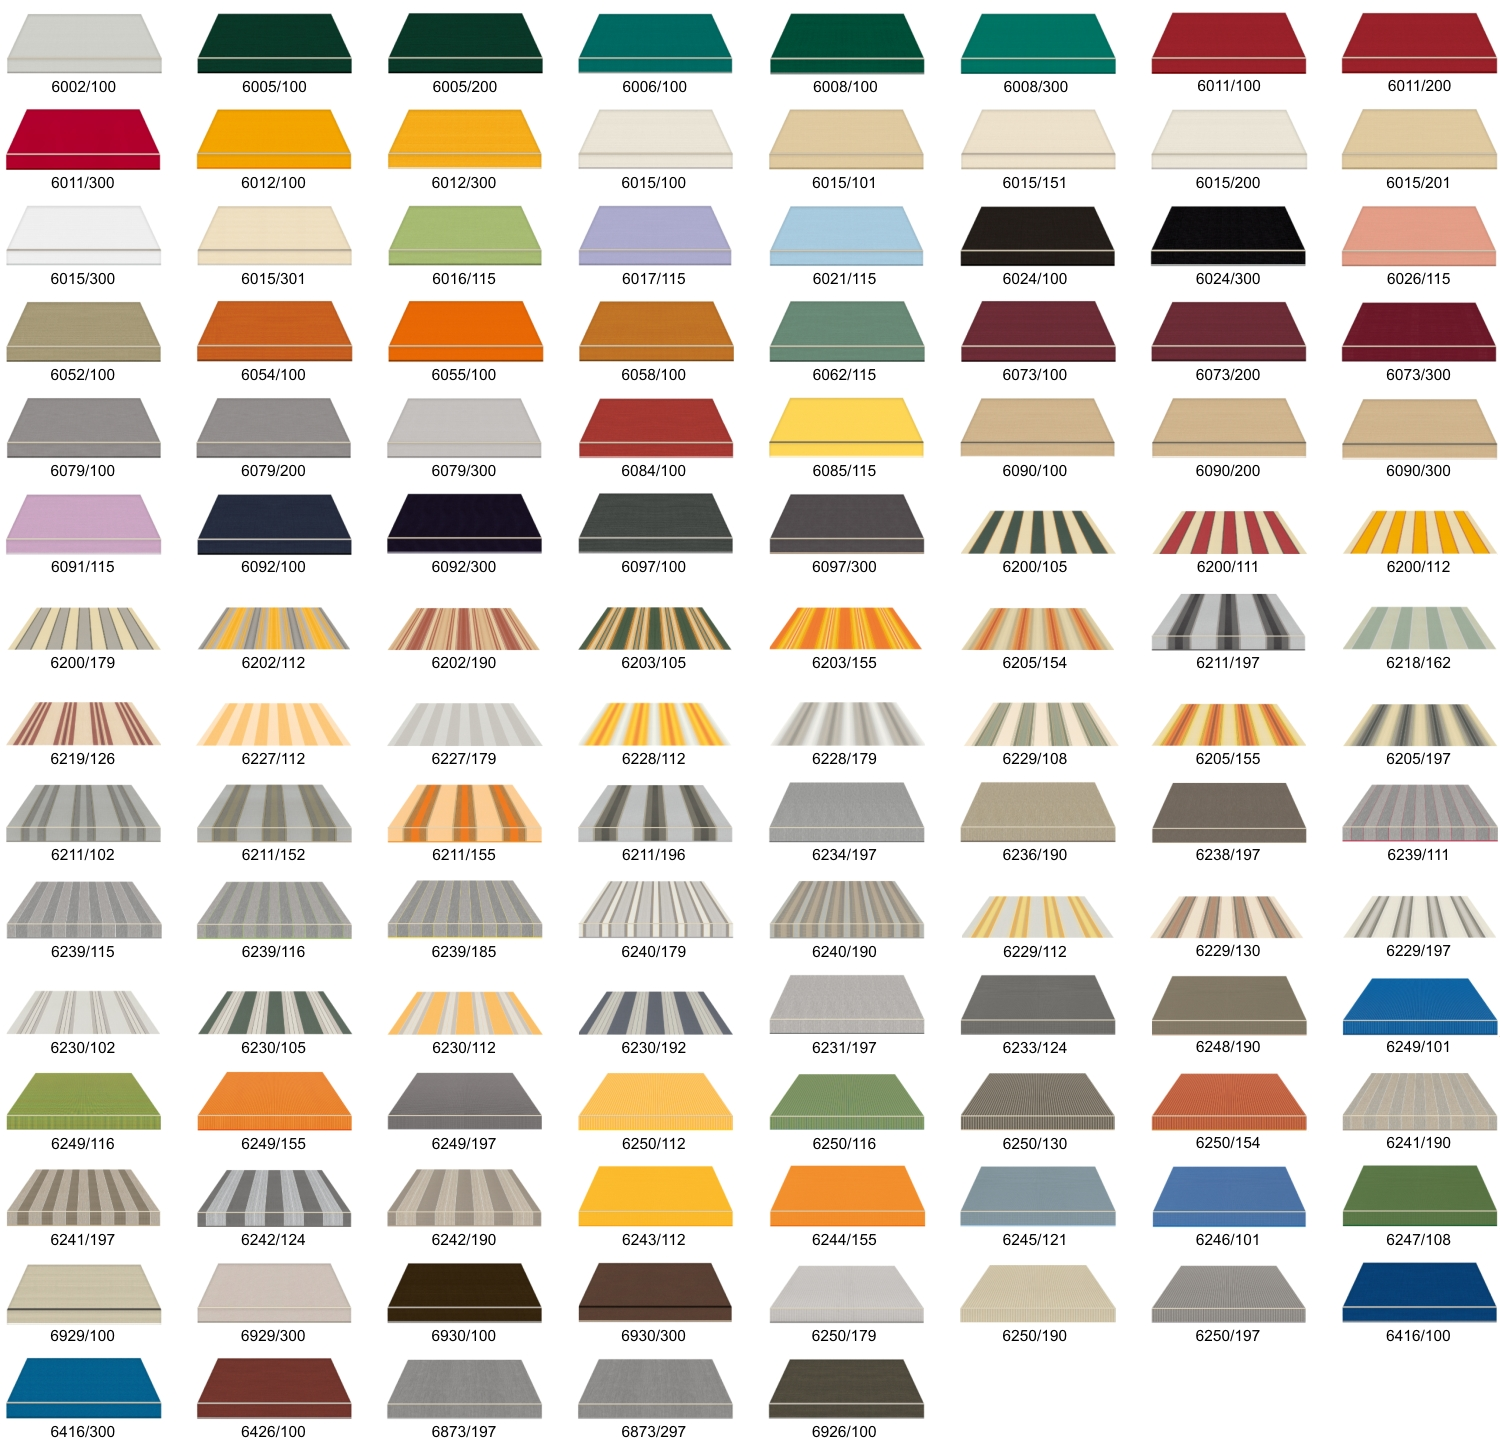 Langton Awning Fabric Colour Options